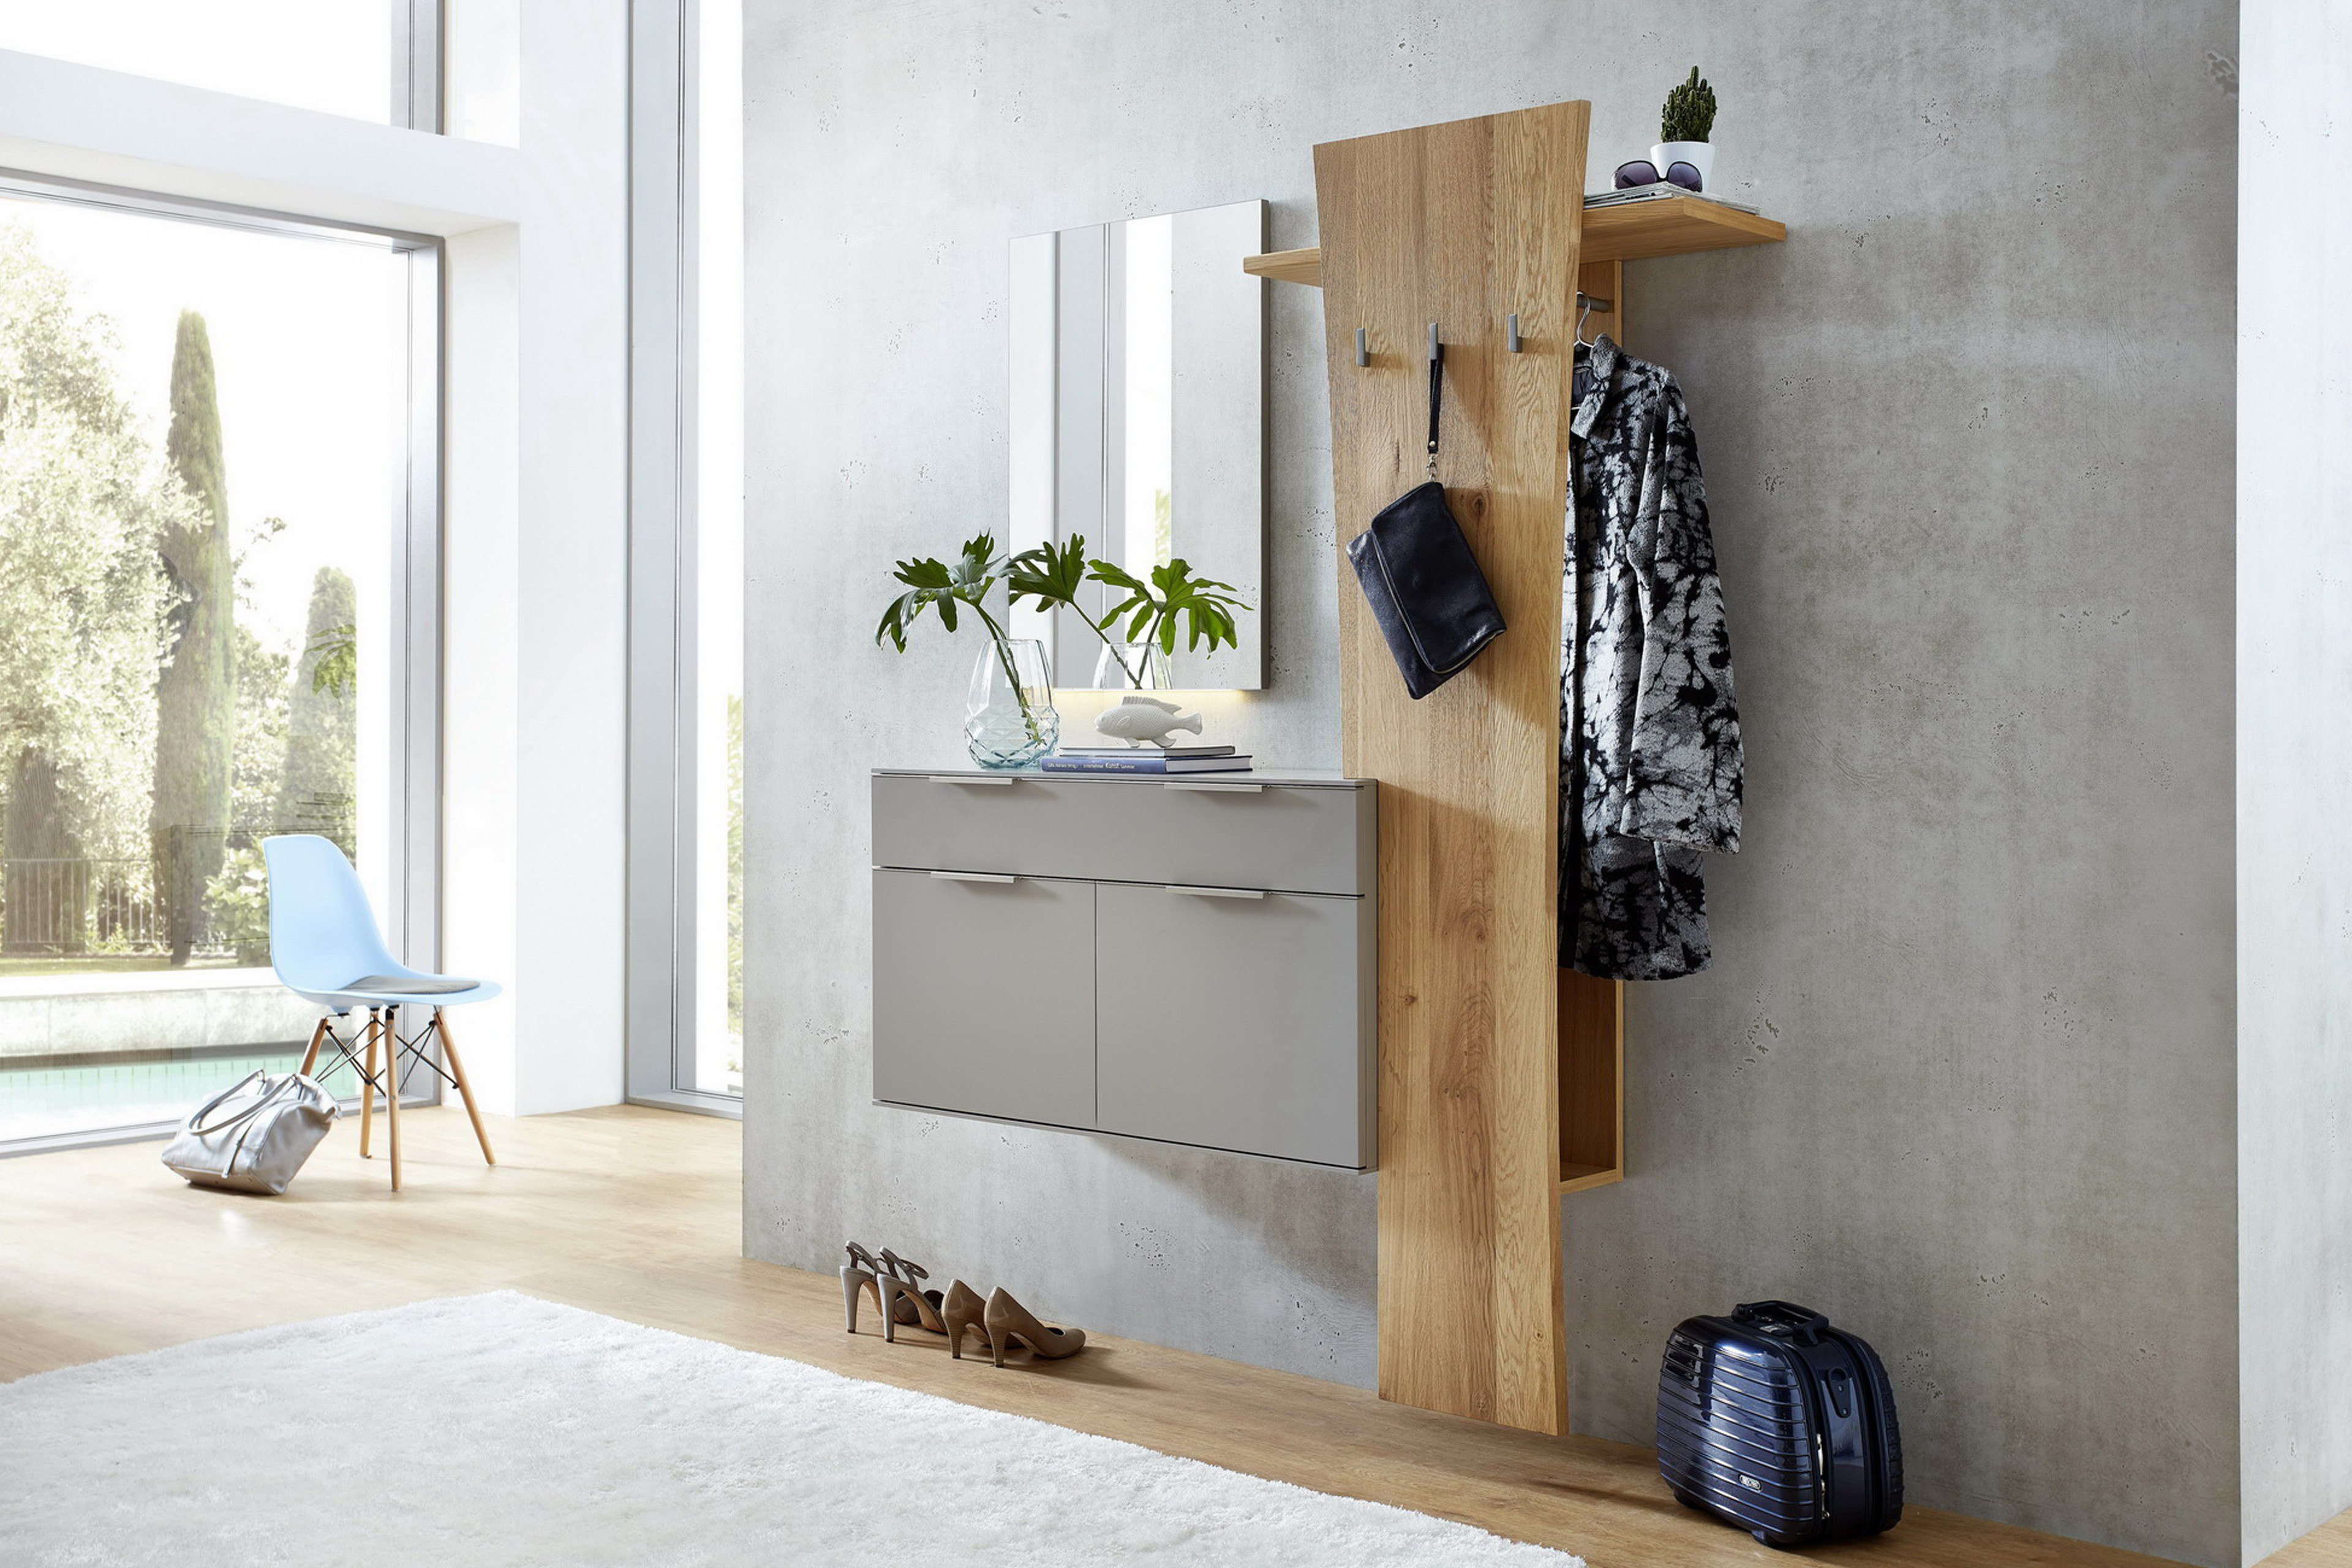 leinkenjost salerno garderobe in fango balkeneiche m bel letz ihr online shop. Black Bedroom Furniture Sets. Home Design Ideas